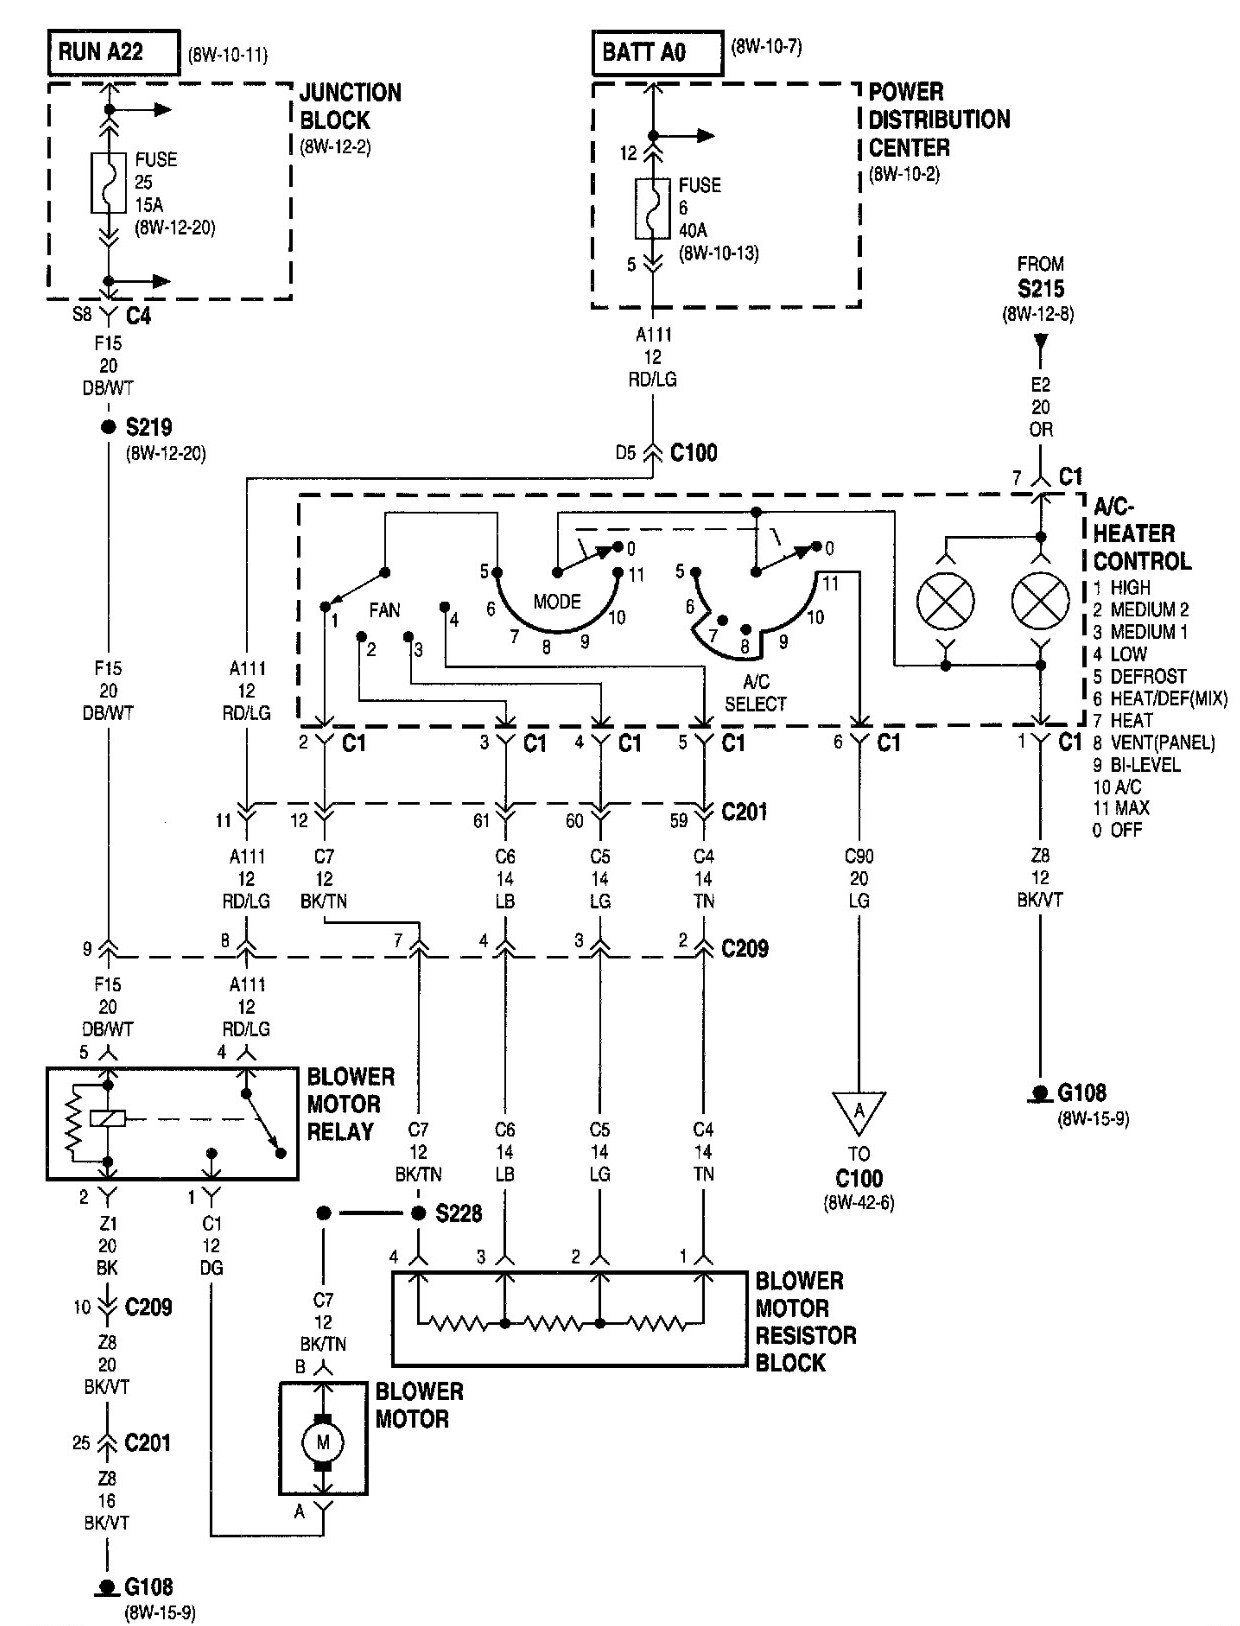 2000 jeep cherokee wiring - wiring diagram page chin-owner -  chin-owner.granballodicomo.it  granballodicomo.it